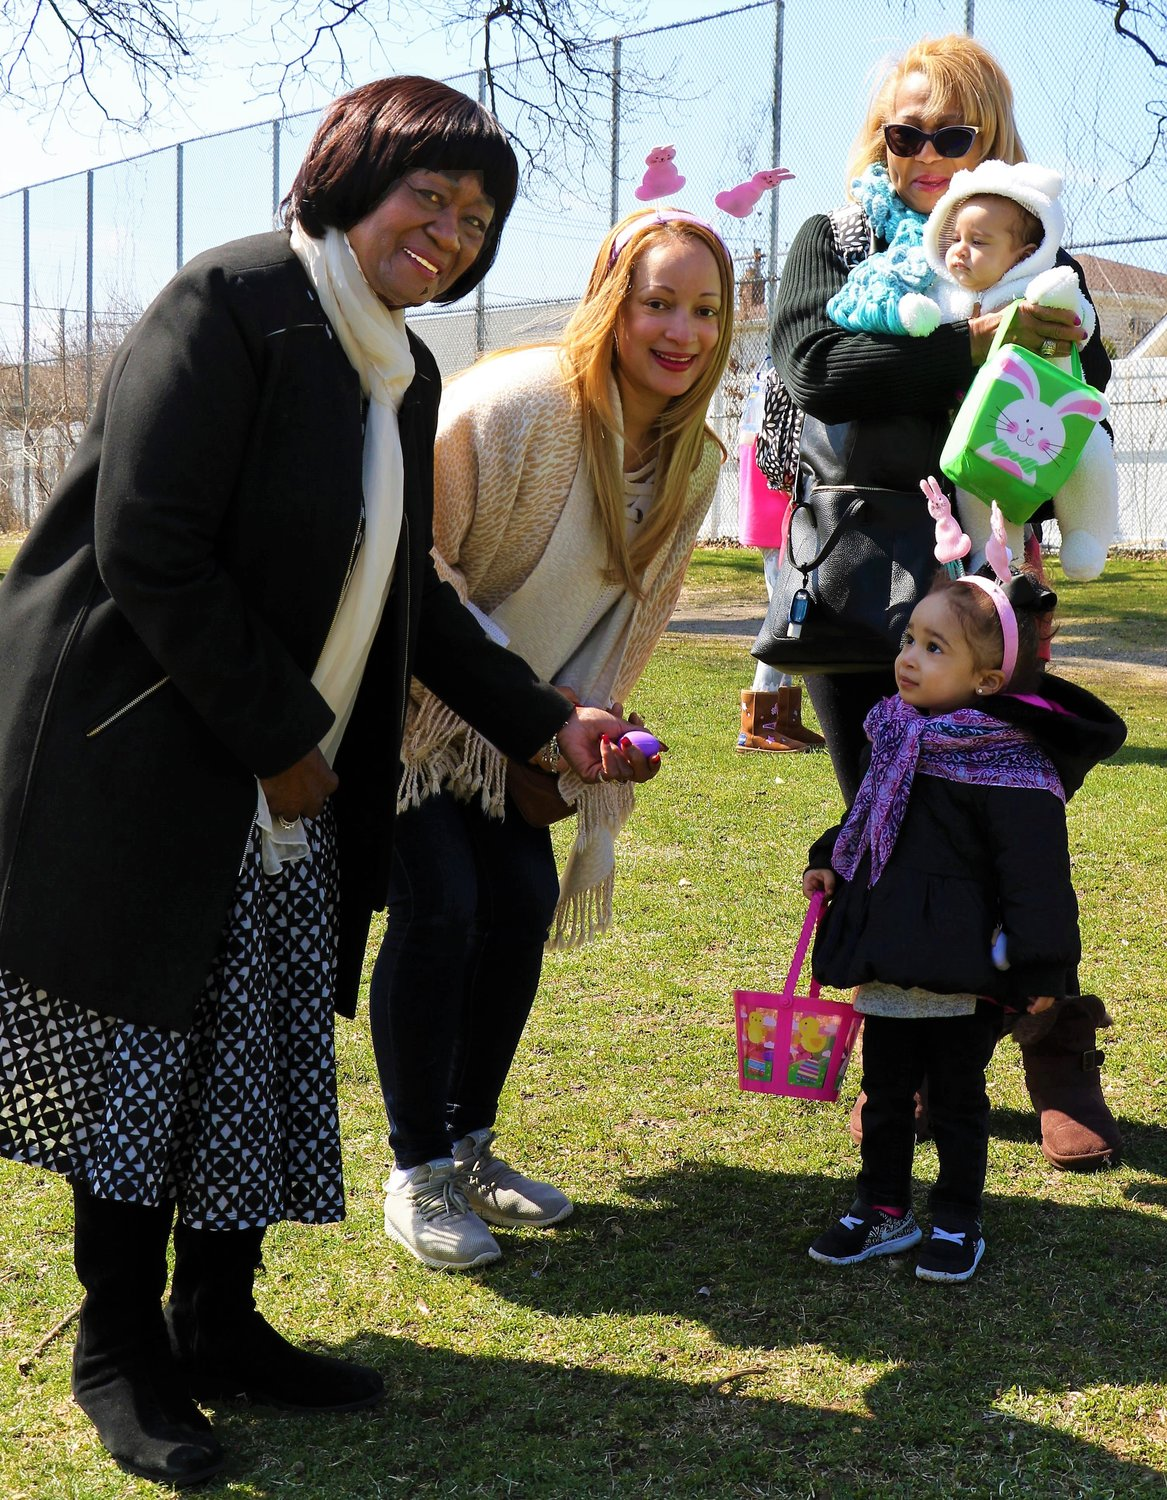 Starr Abreu, 2, received an Easter treat from Town Senior Councilwoman Dorothy Goosby, left,. Abreu's mother, Ruth Perez, and grandmother Noelia Paredes, holding Dylan Abreu, joined them.